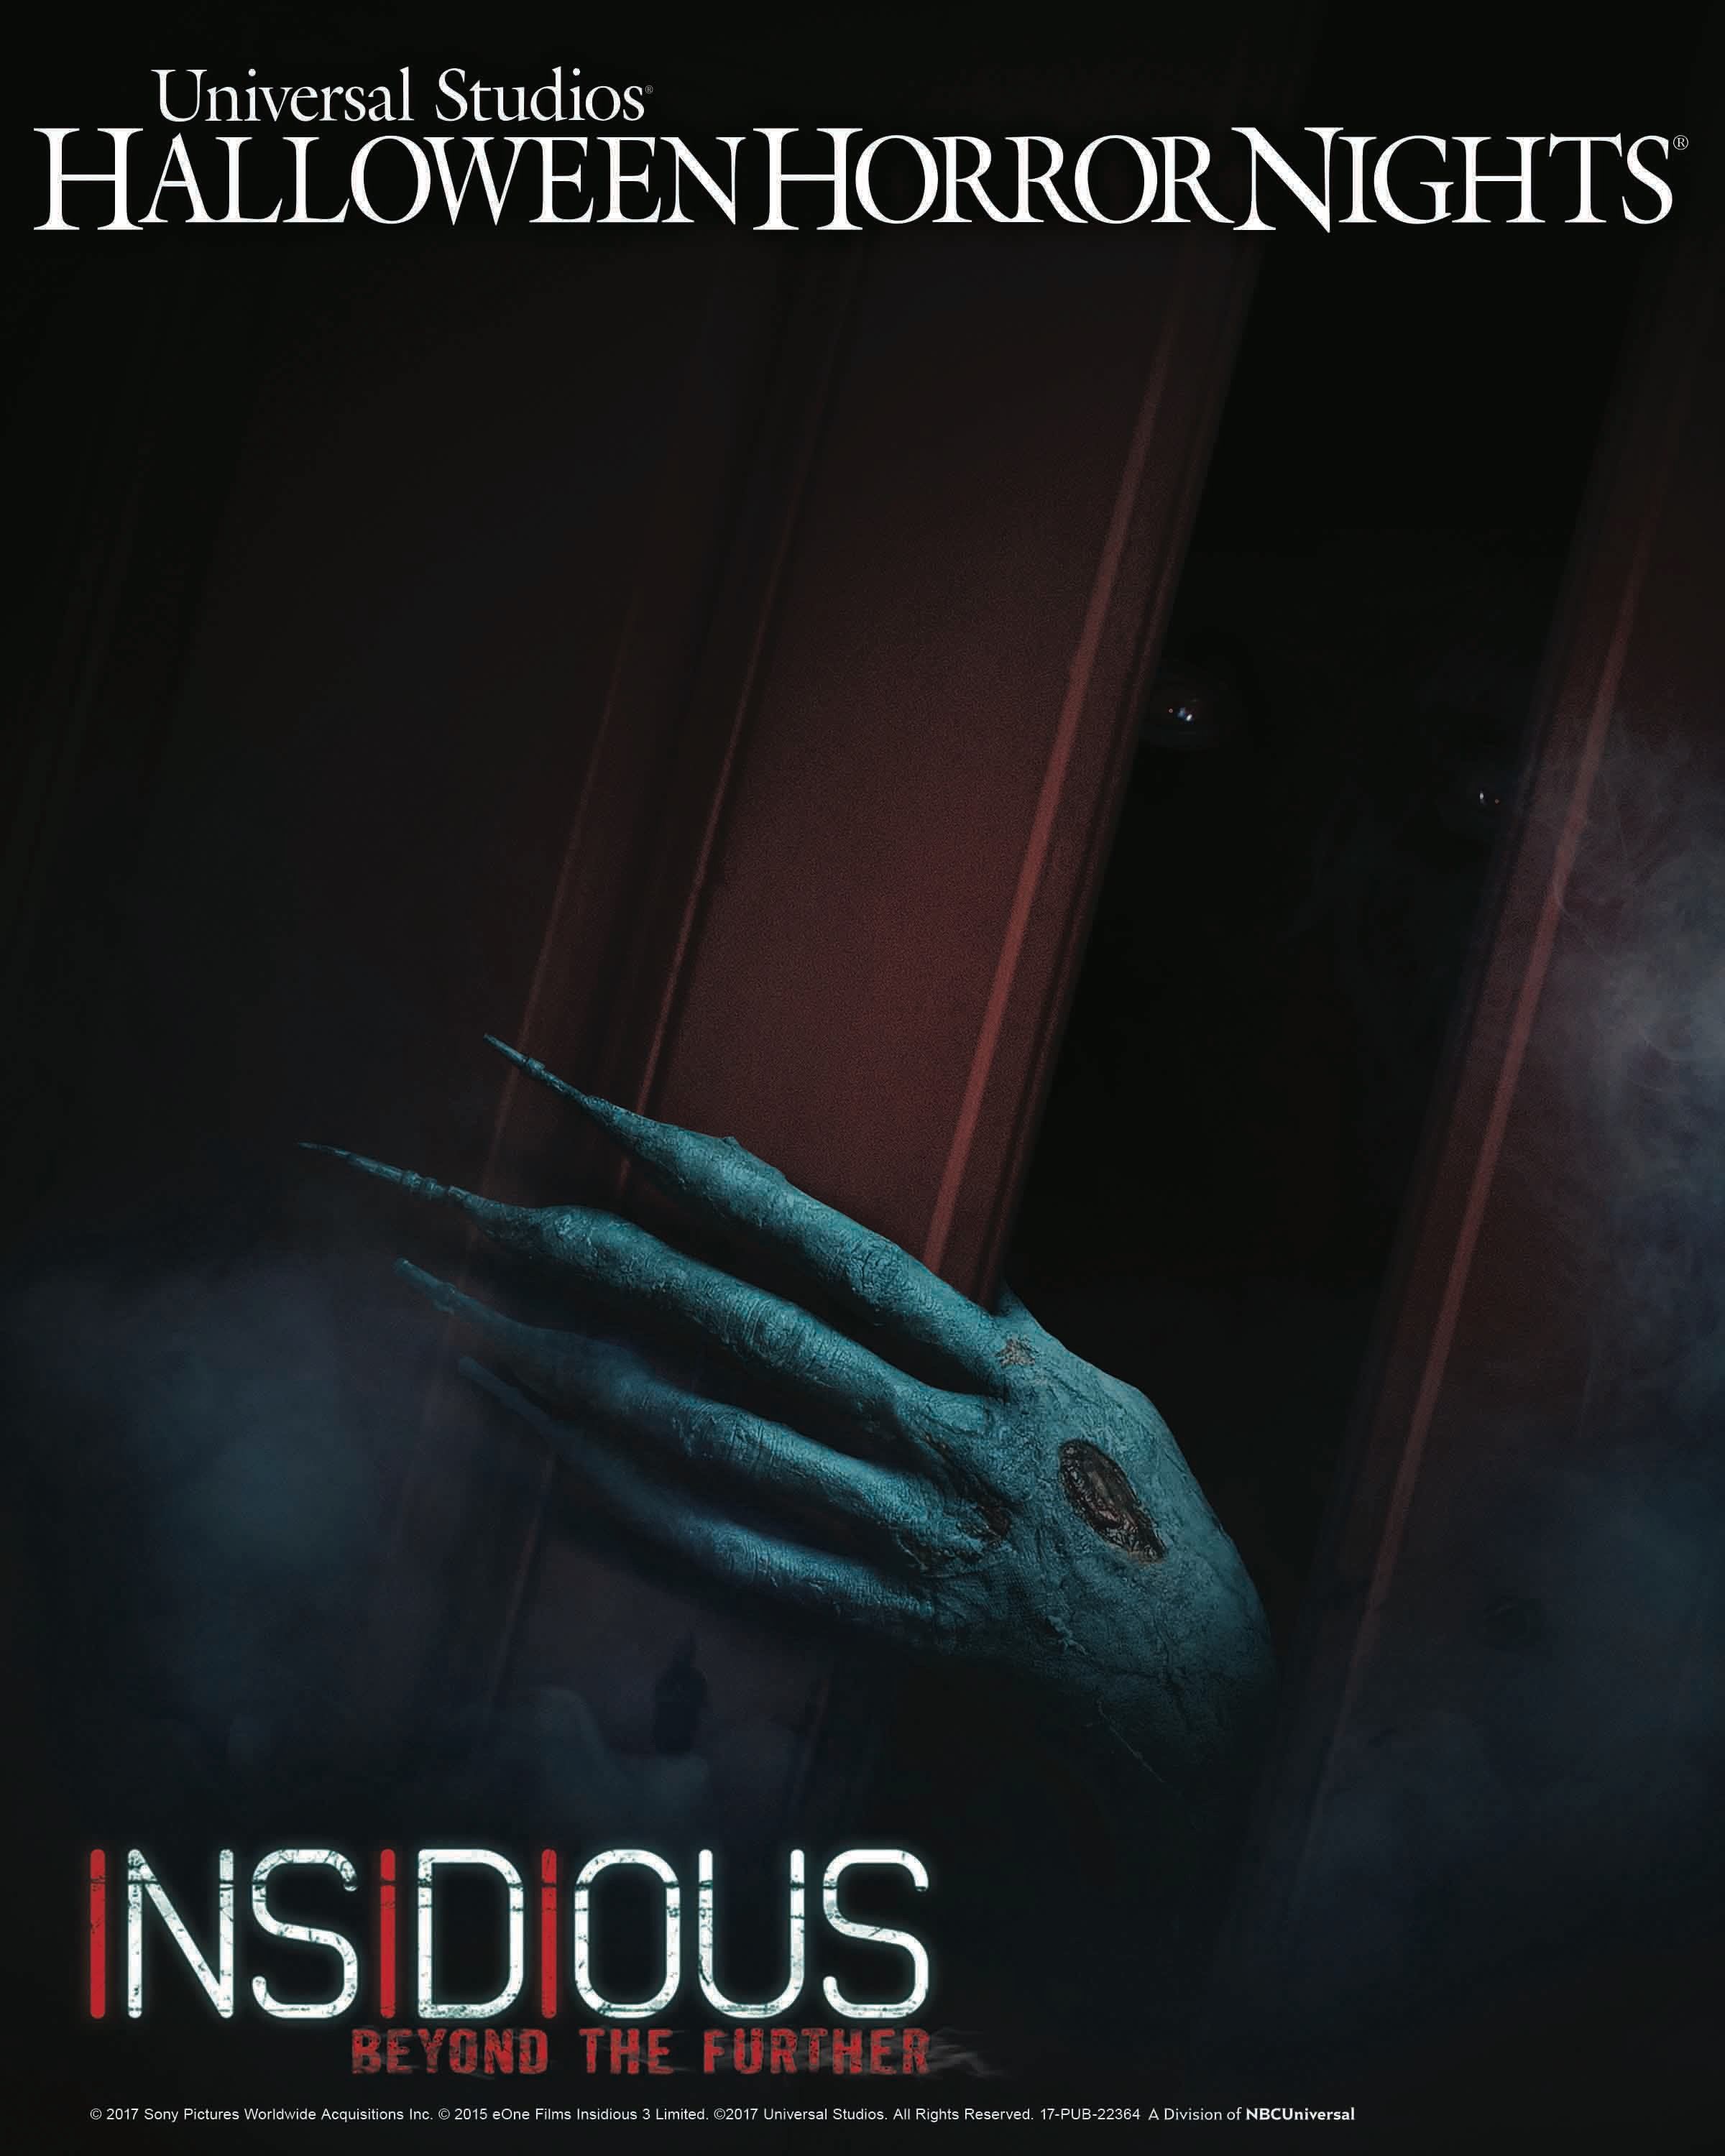 insidious beyond the further will join titans of terror and saw the games of jigsaw at universal studios hollywoods halloween horror nights which runs - Halloween Horror Nights Free Tickets